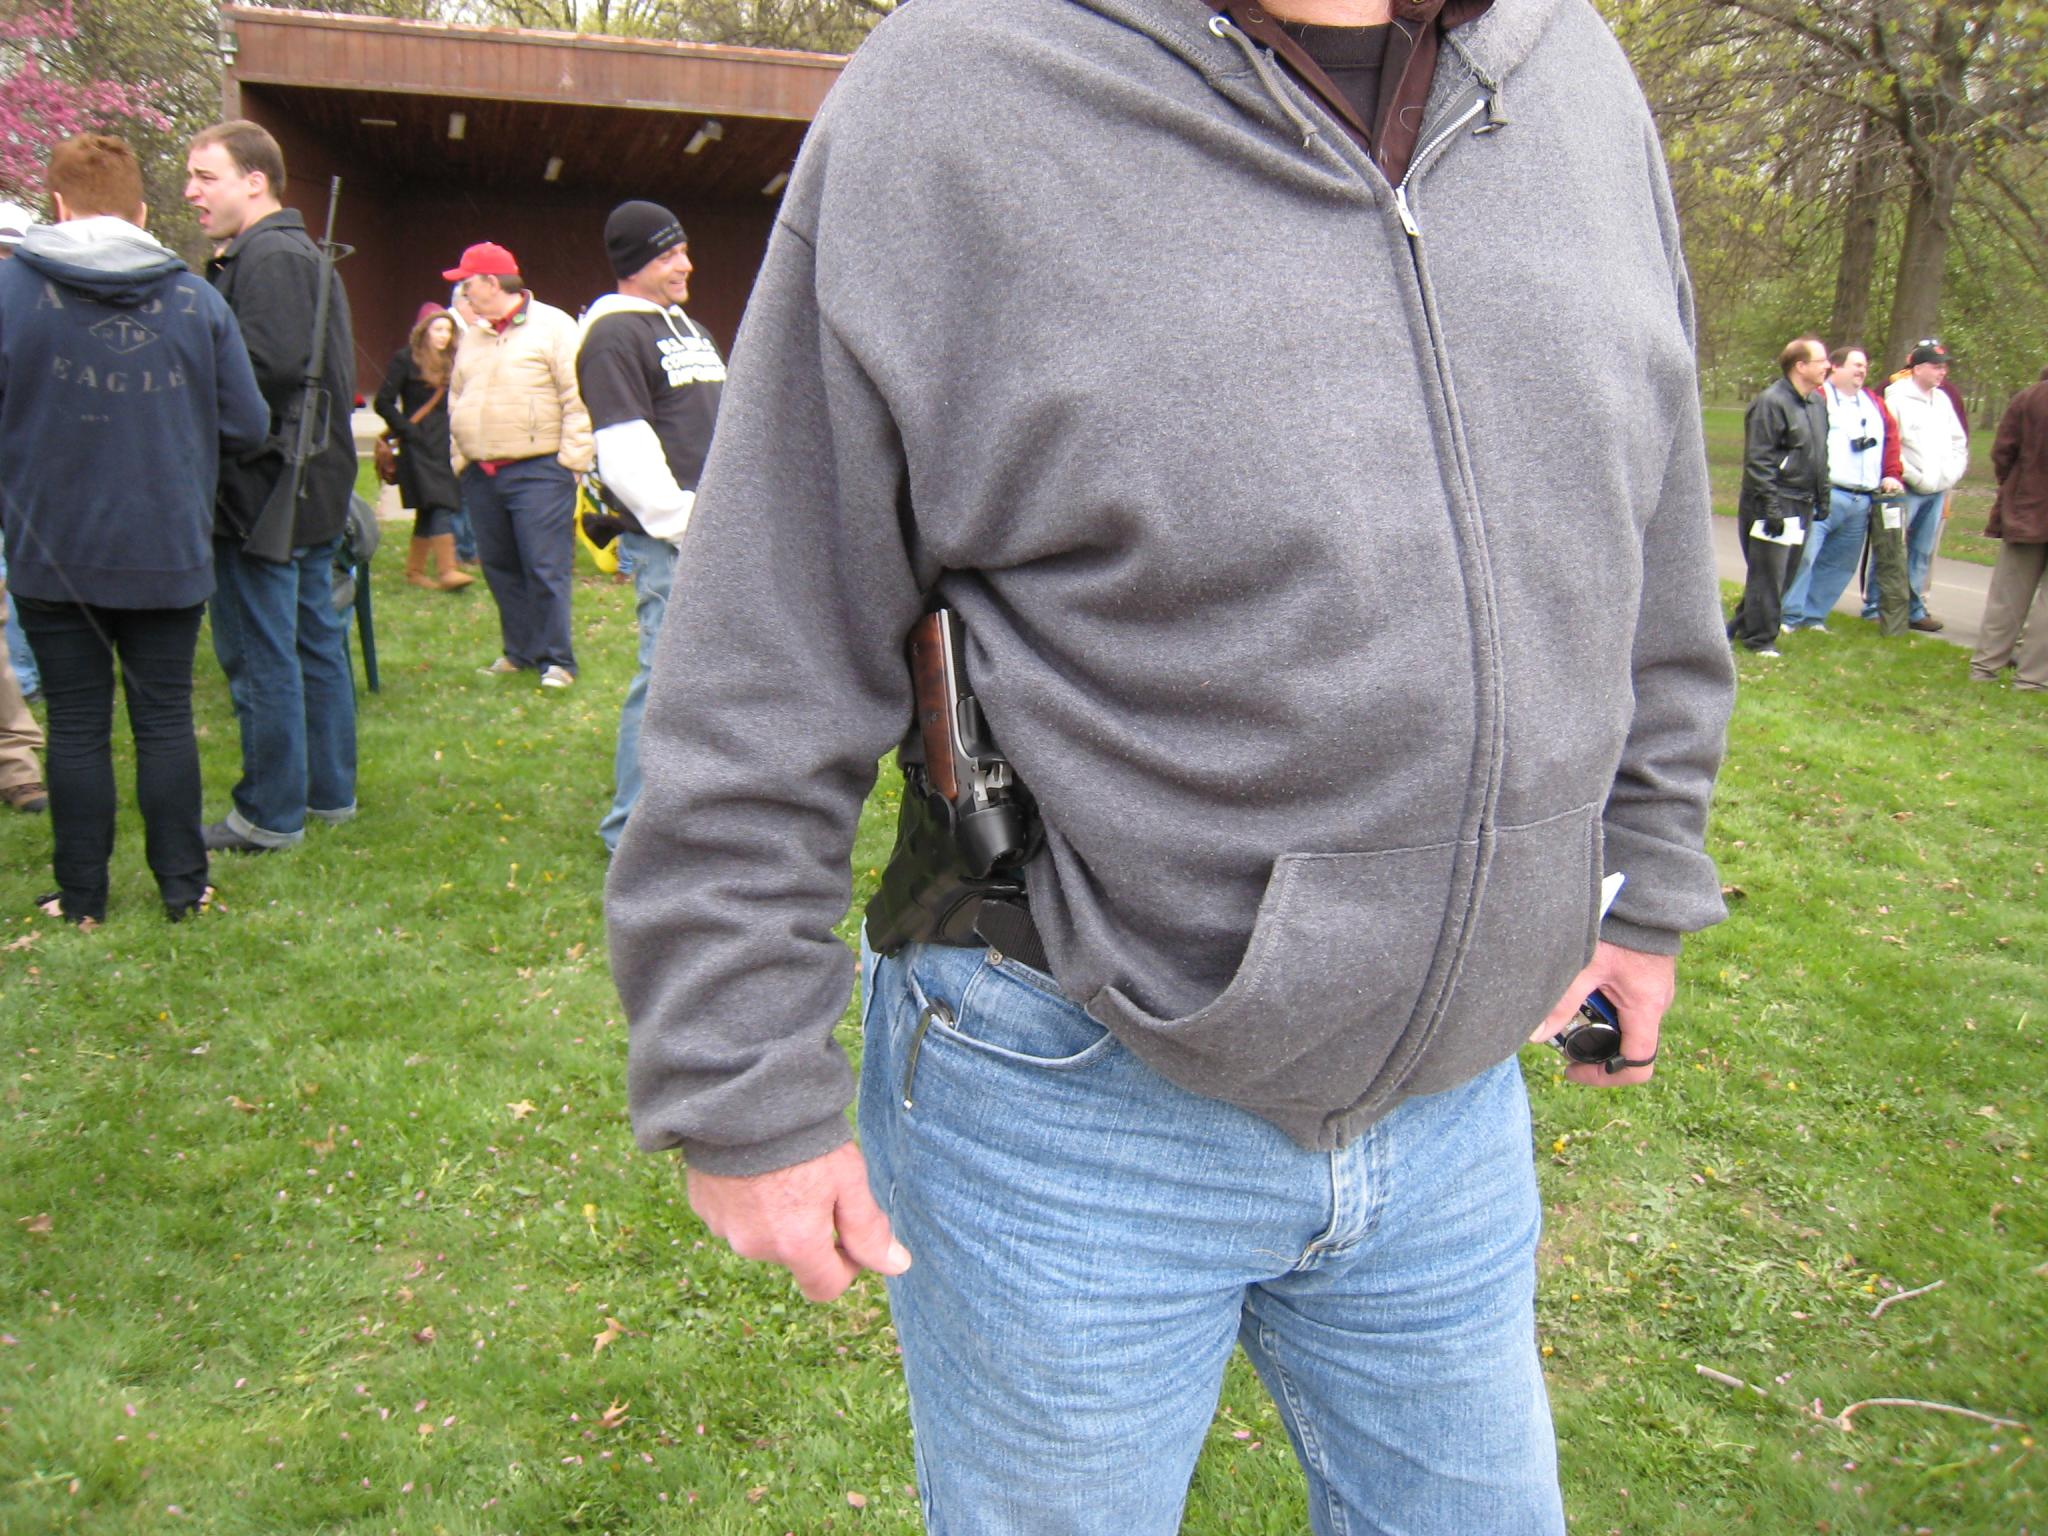 Missouri Becomes 12th State To Allow Concealed Carry Without A Permit Featured